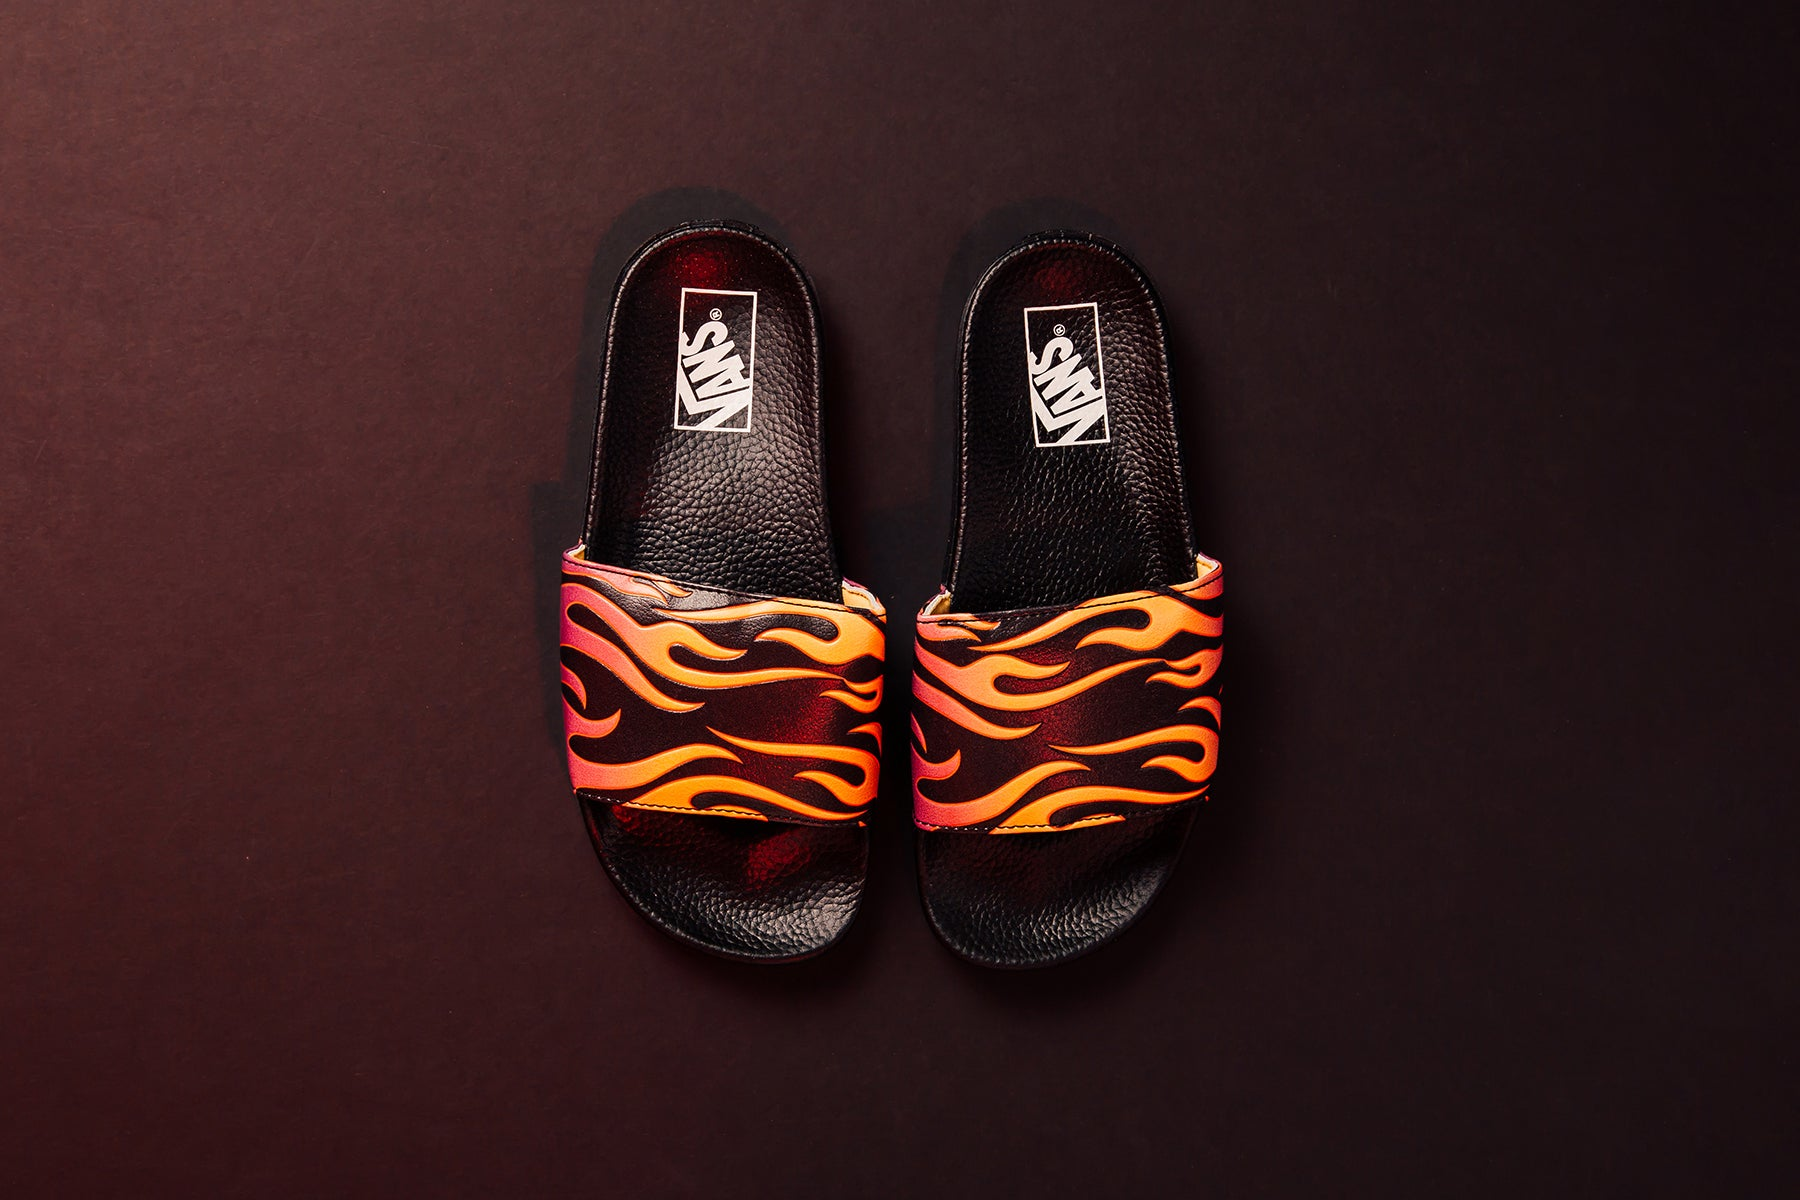 Vans expands their women s offering with another flame iteration - this  time on the newly-designed slide model ( 35). The latest sandals feature  synthetic ... 2fee61770a